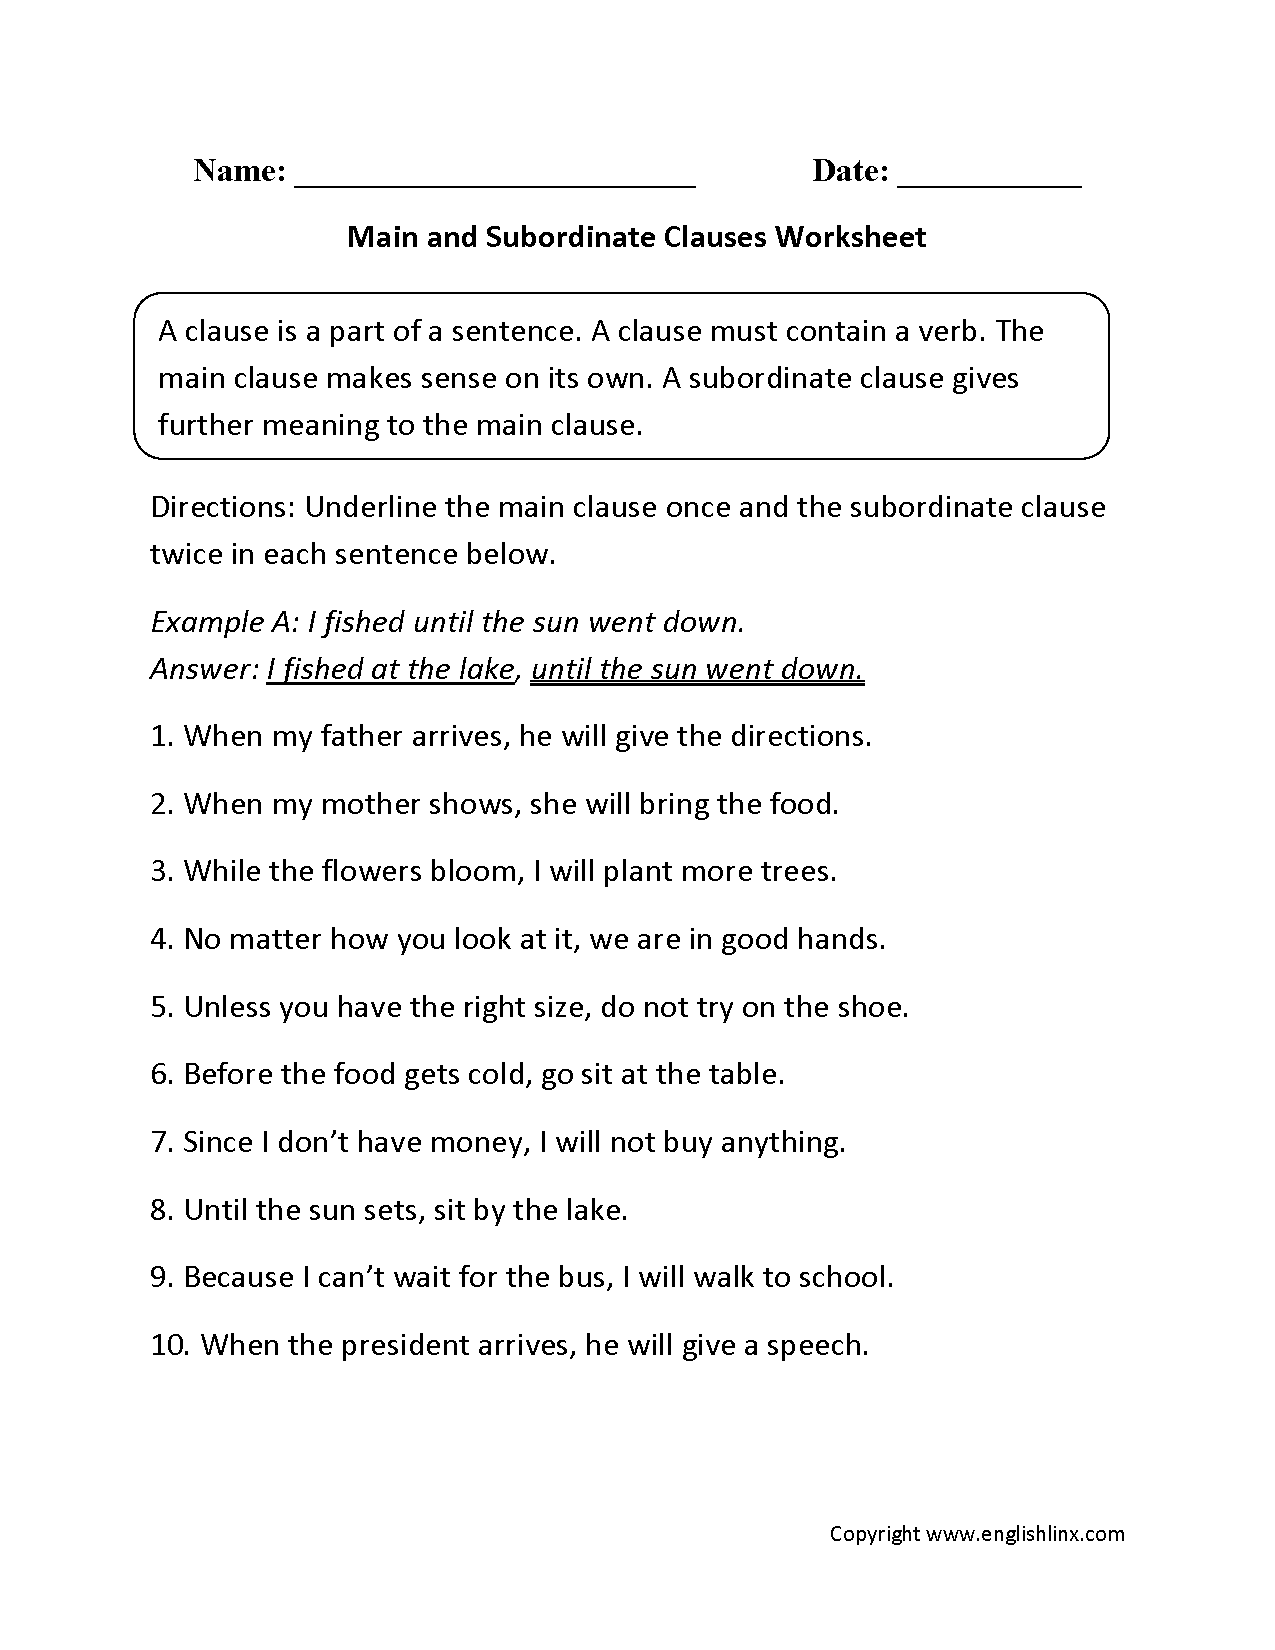 Worksheets Independent And Dependent Clauses Worksheets englishlinx com clauses worksheets grades 6 8 worksheets